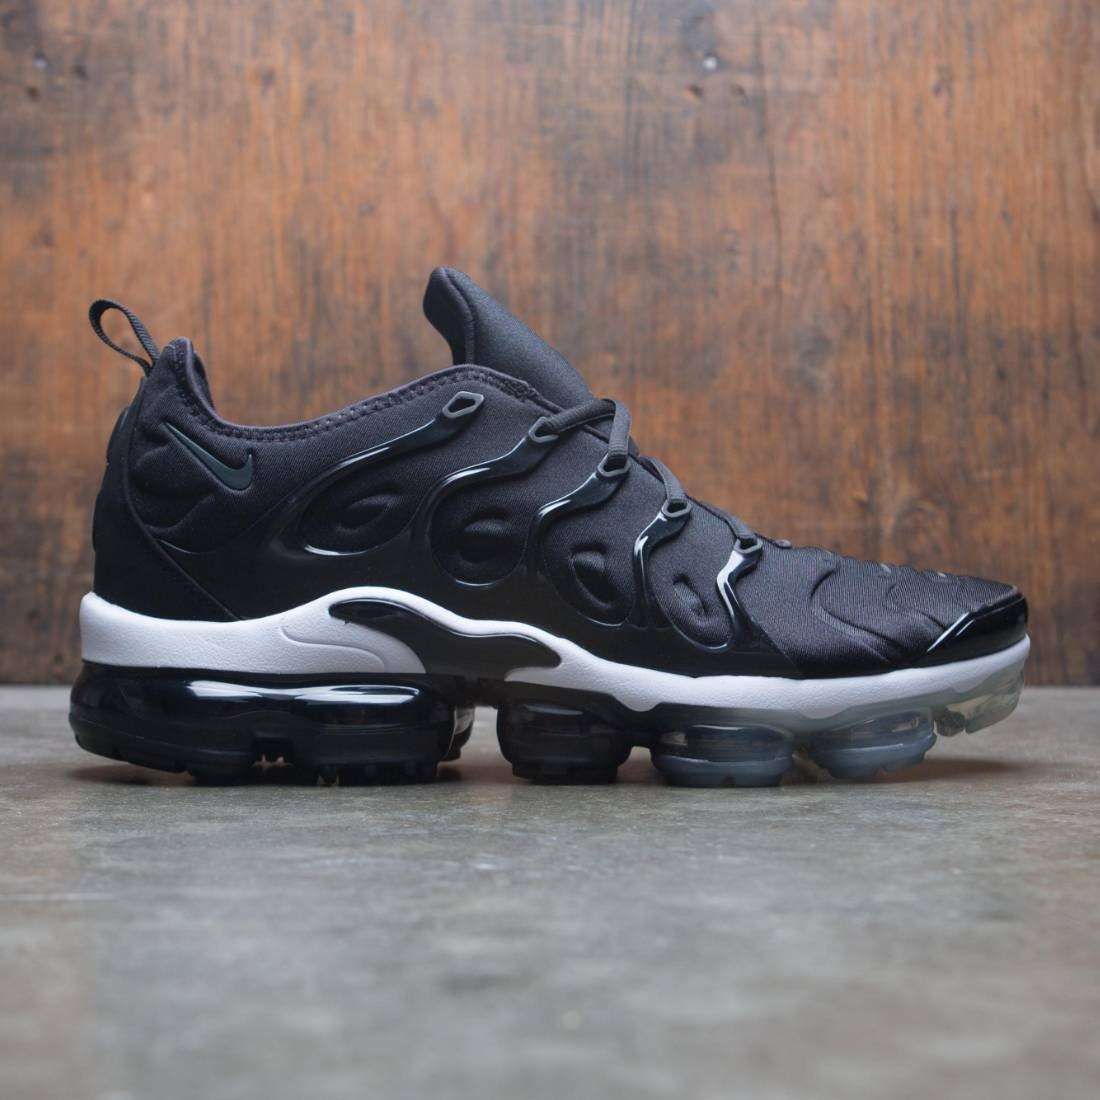 418ebf13e8b79 nike men air vapormax plus black anthracite white